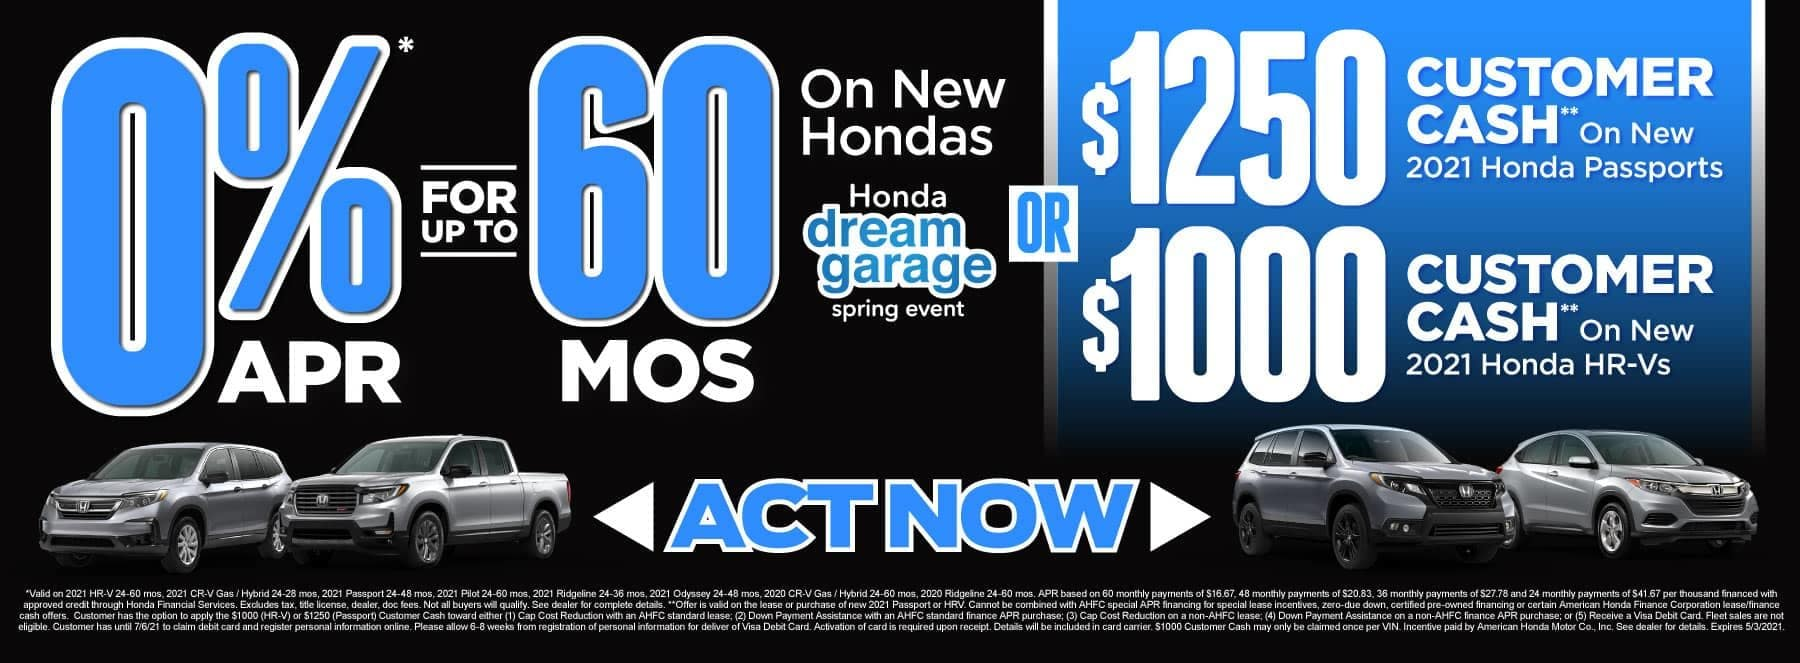 0% APR for up to 60 months on new Hondas | Act Now